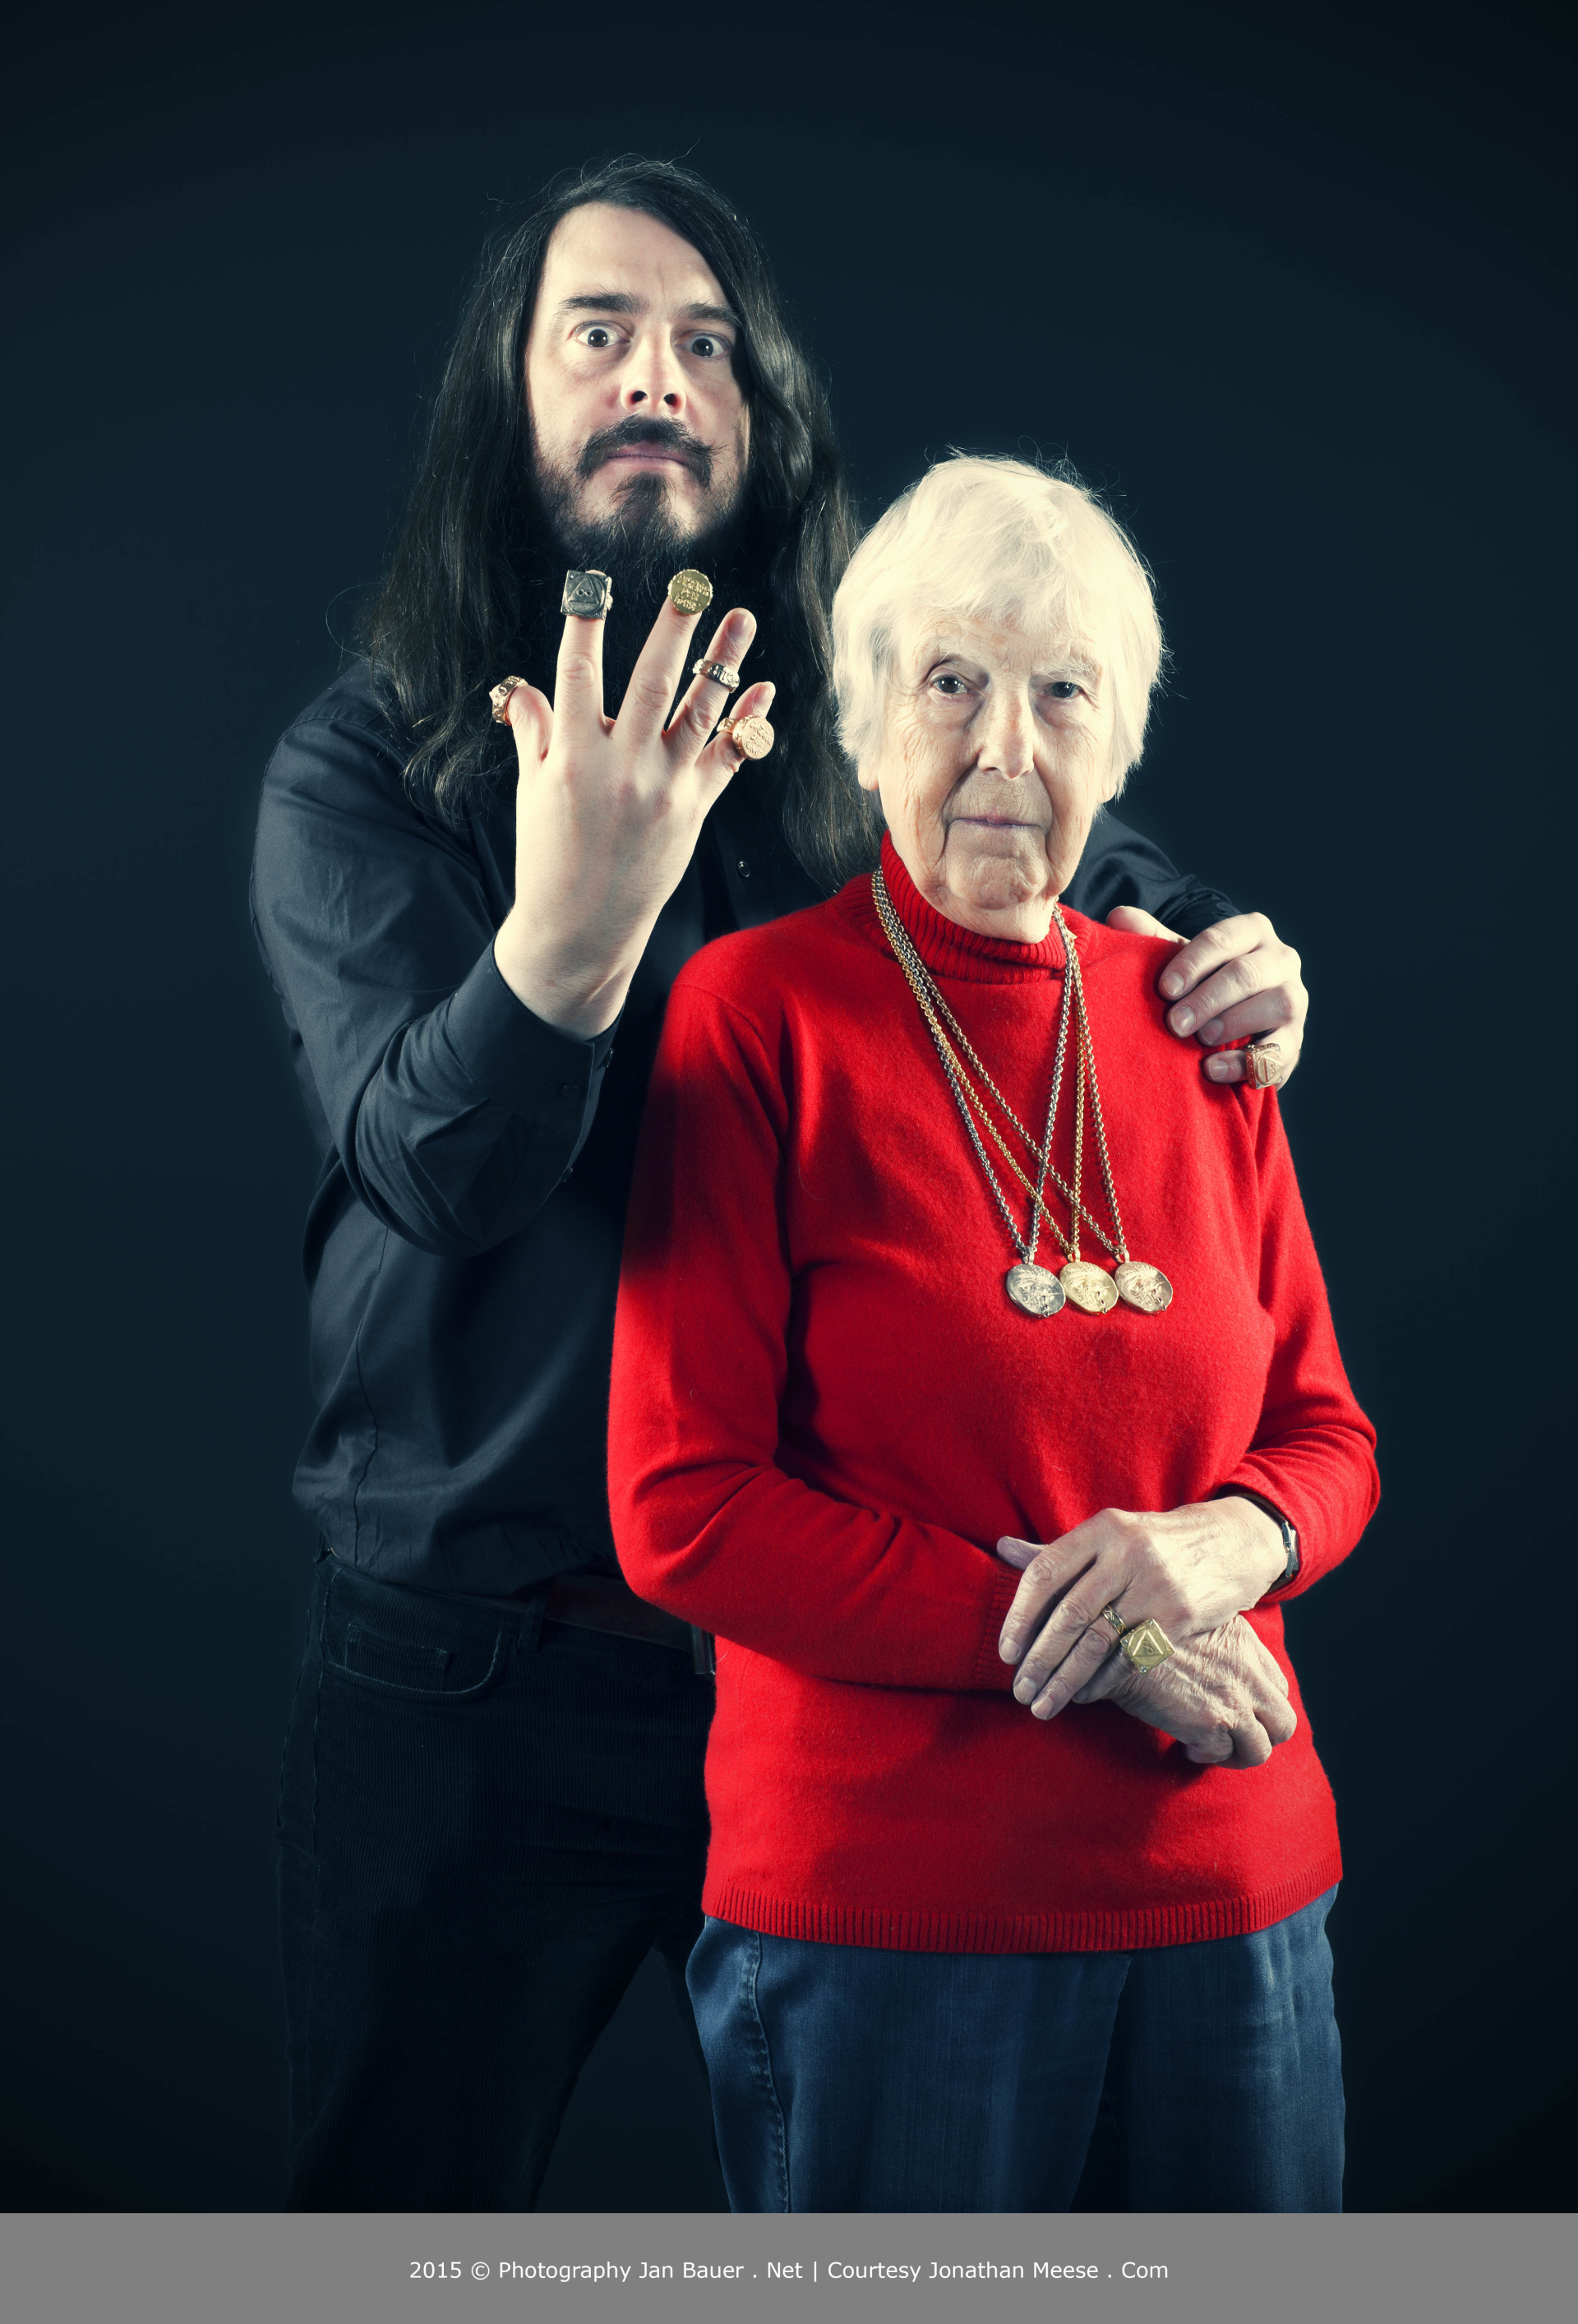 JONATHAN MEESE - Jonathan Meese and his mother Brigitte Meese pose with jewelry designed by Meese himself for Munich jeweler CADA Herbert Kopp in Meeses studio in Berlin, Germany, on Oct. 10, 2015. PHOTO COPYRIGHT AND CREDIT LINE IS TO USE COMPLETLY ON THE SAME PAGE OF IMAGE PUBLISHING: 2015 © PHOTOGRAPHY JAN BAUER . NET / COURTESY JONATHAN MEESE . COM Scene/ Keywords: Aktion, Action, Portrait, Portraet, Porträt 10.10.2015 Berlin, Deutschland www.janbauer.net mail@janbauer.net mobile phone +49.171.4981690